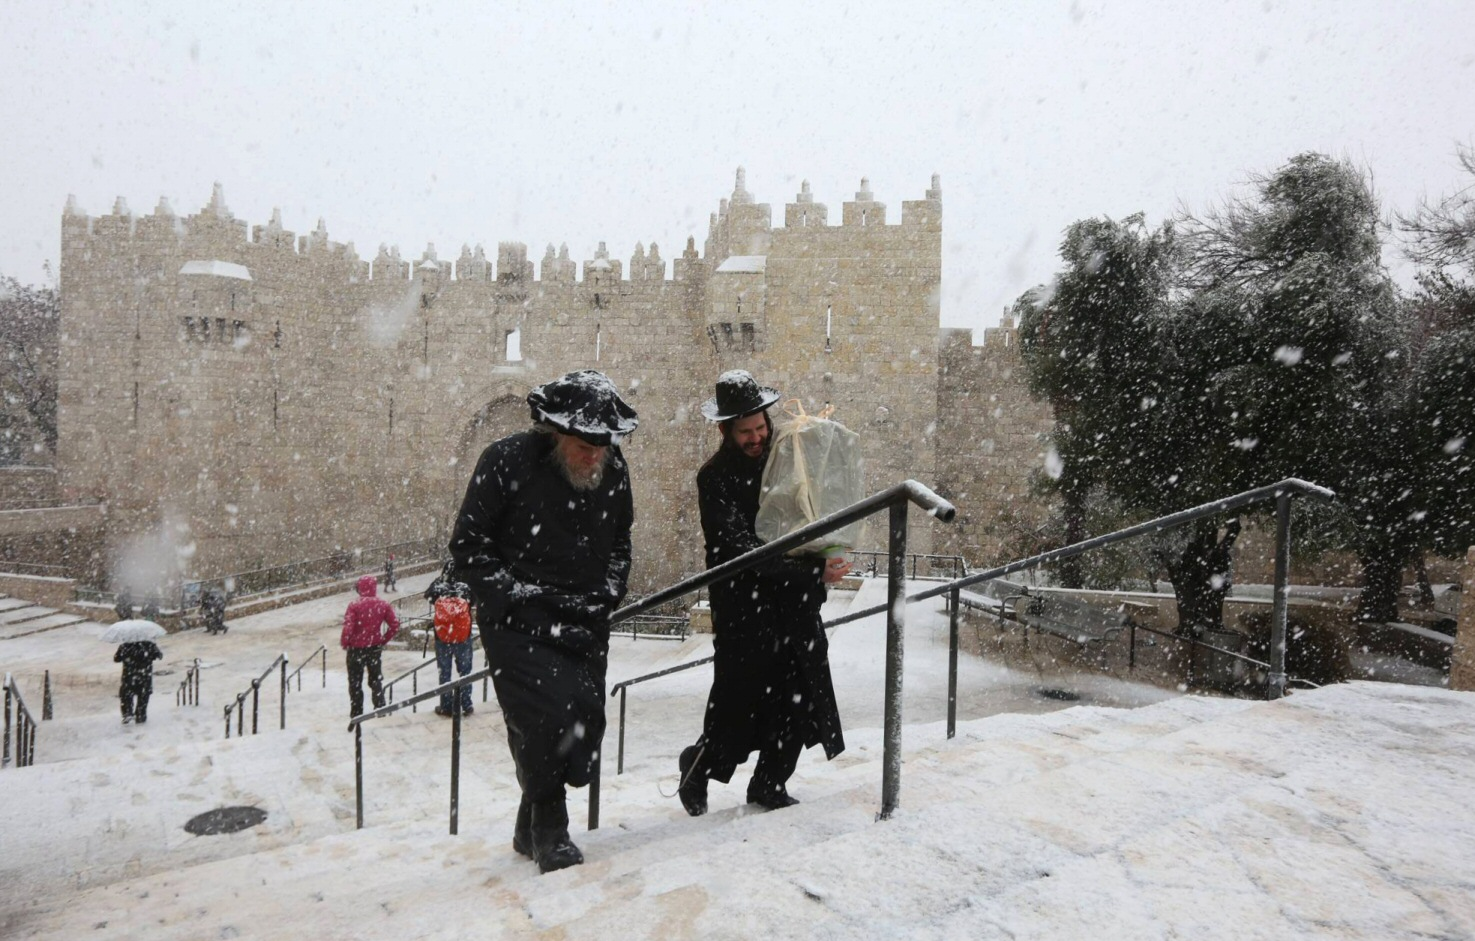 241J3-Jerusalem.-First-winter-snow-6092-_14340503